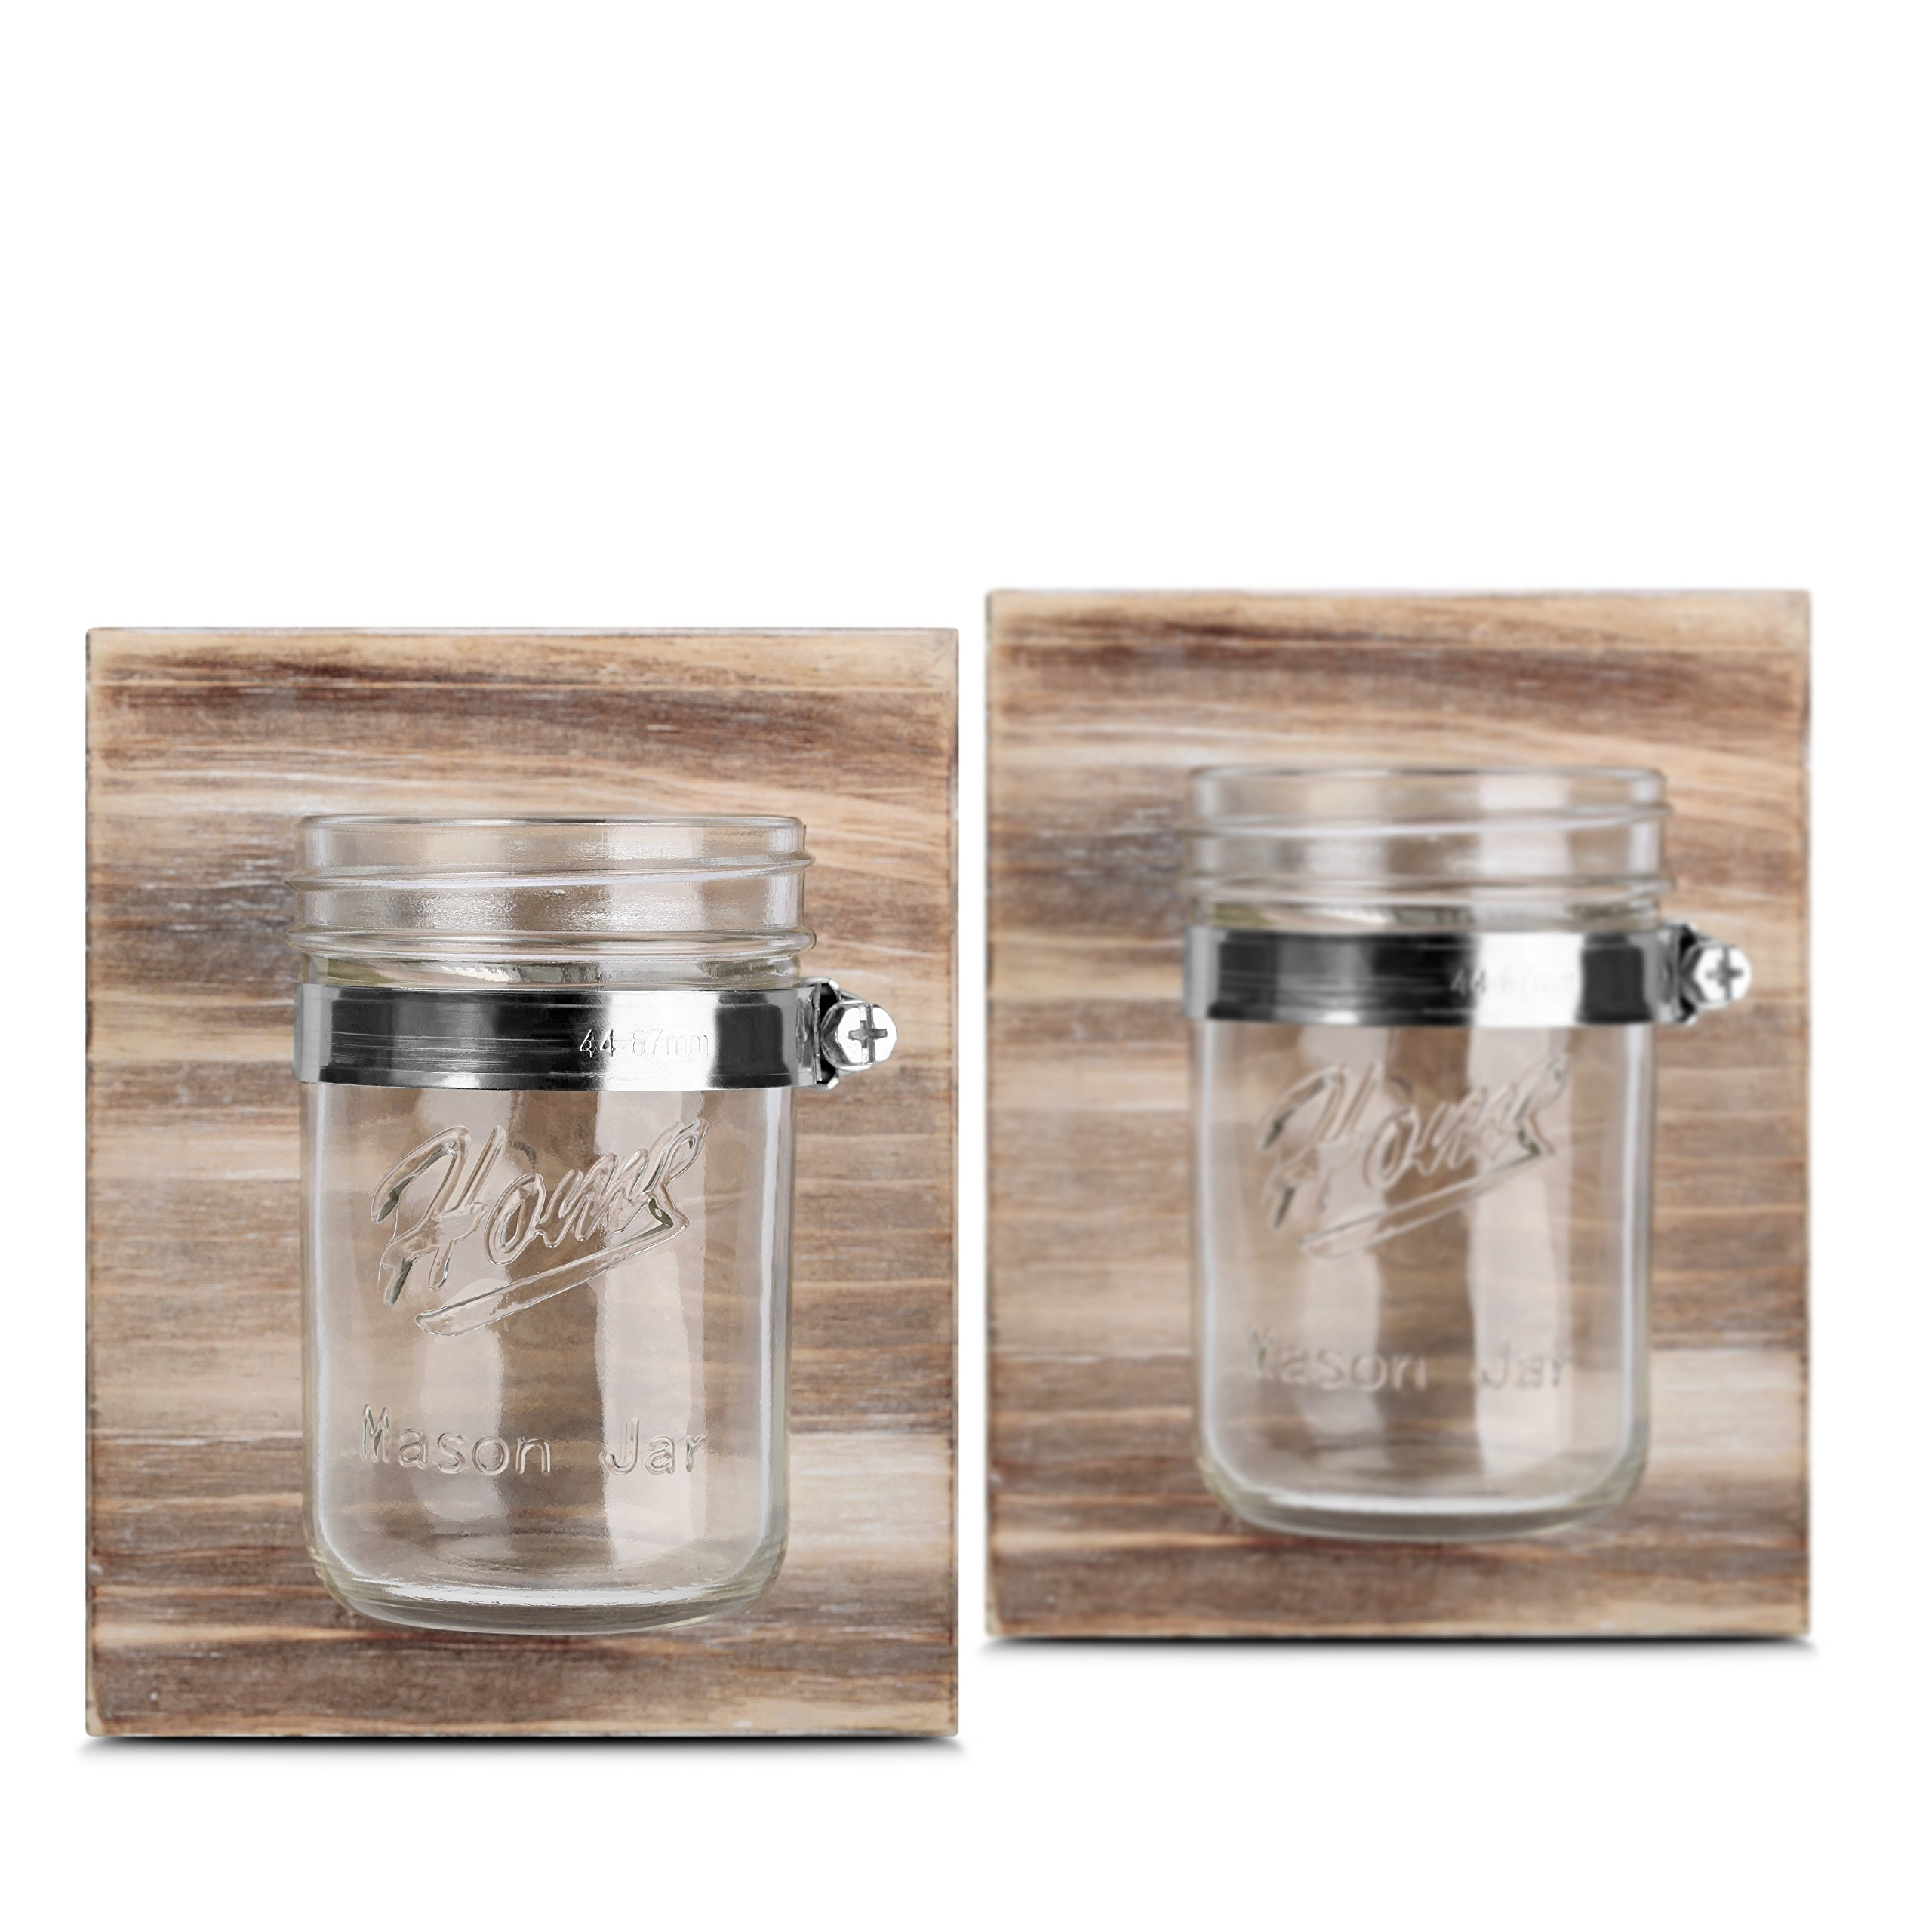 Gbtree Rustic Décor Mason Jar Planter - Wall Decoration Solid Wooden Board Office Organization and Even Bathroom Toothbrush Holder in Brown(Set of 2)